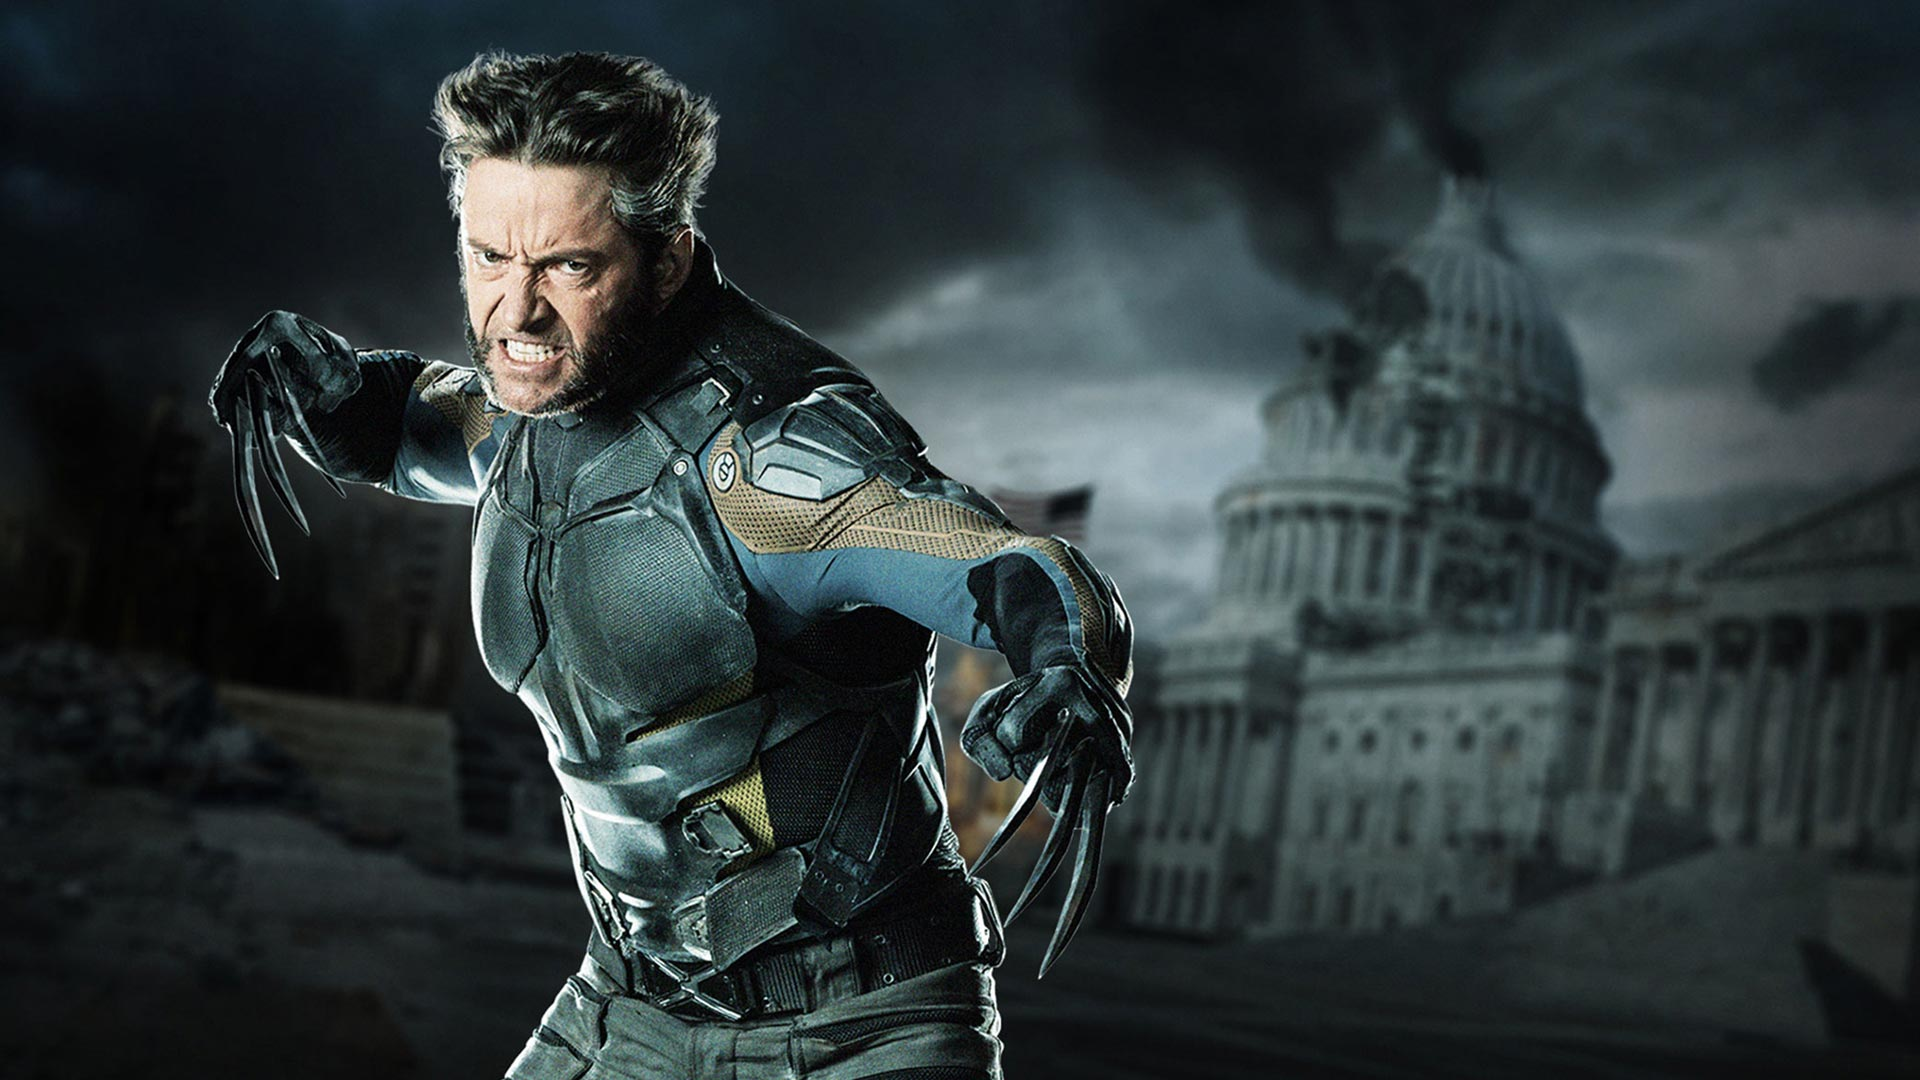 Men Days of Future Past Movie 2014 HD iPad iPhone Wallpapers 1920x1080